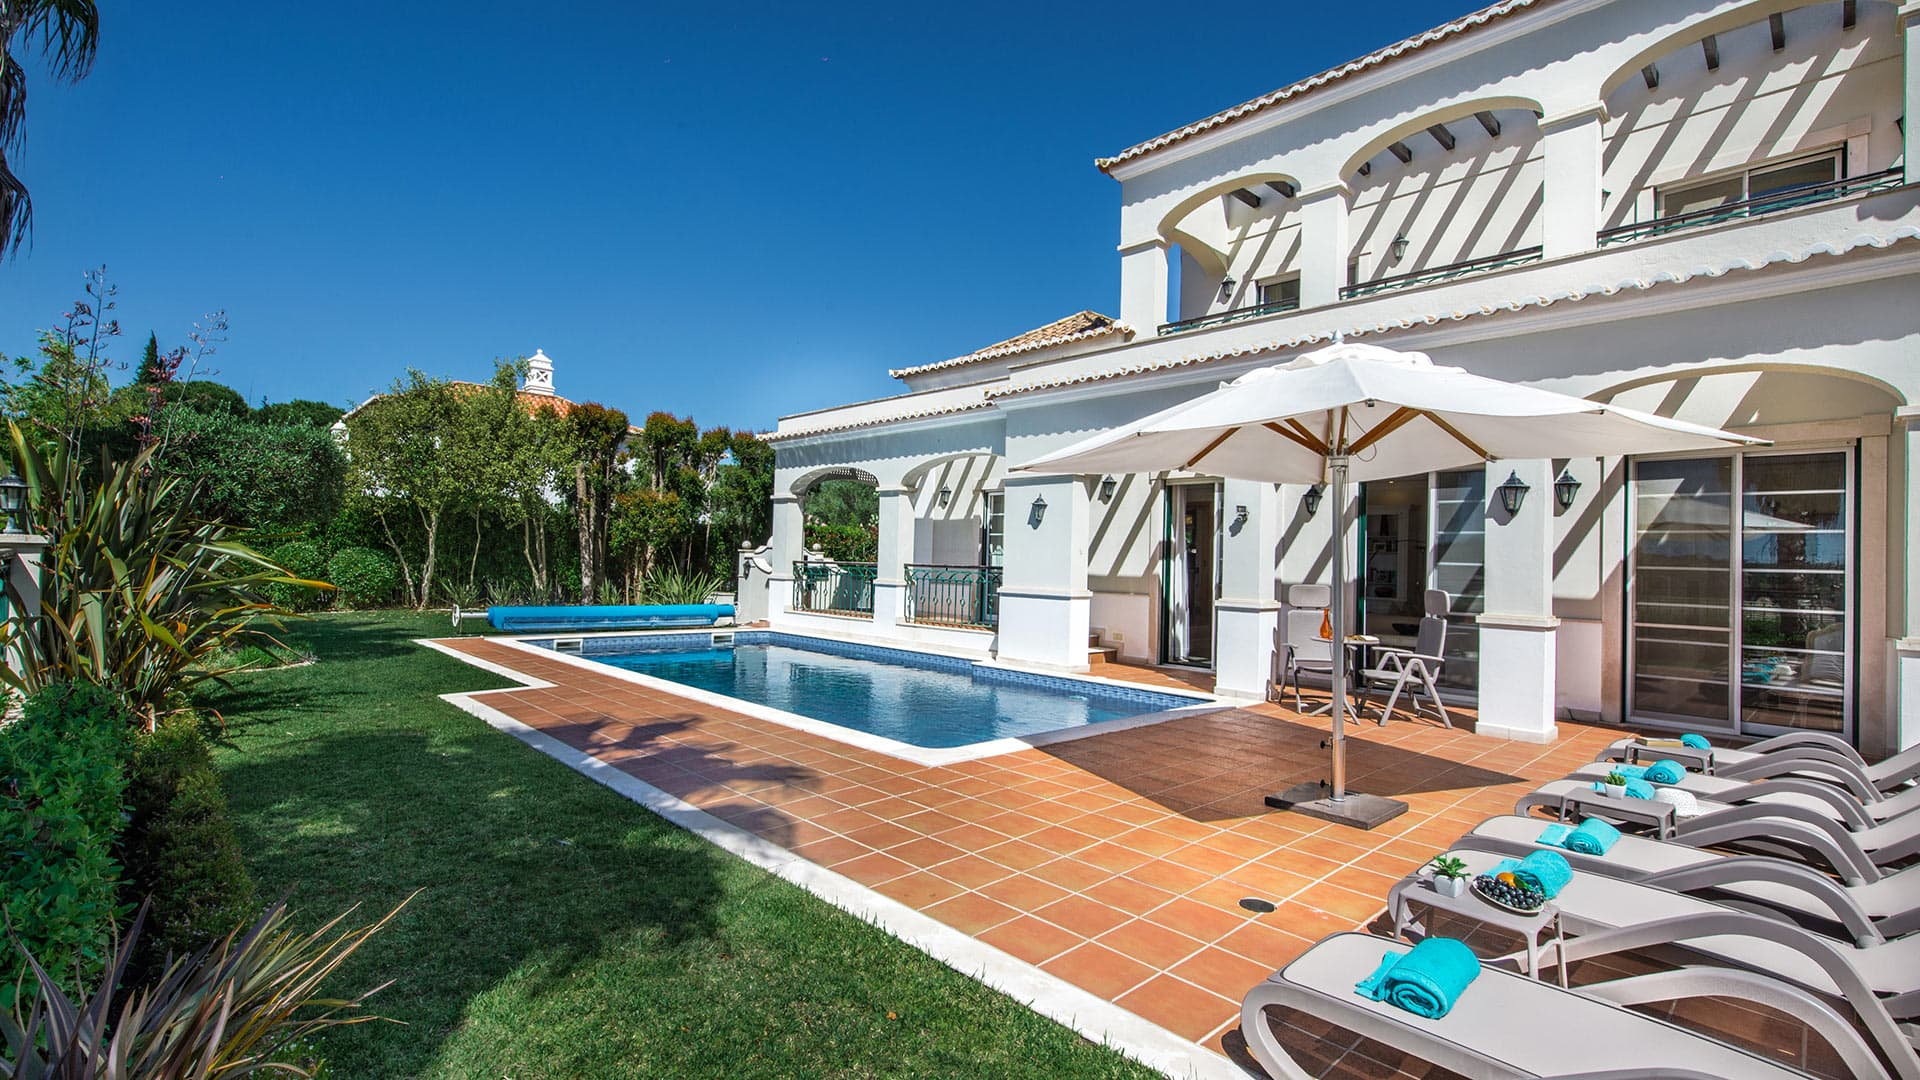 Villa Villa Colombina, Rental in Algarve